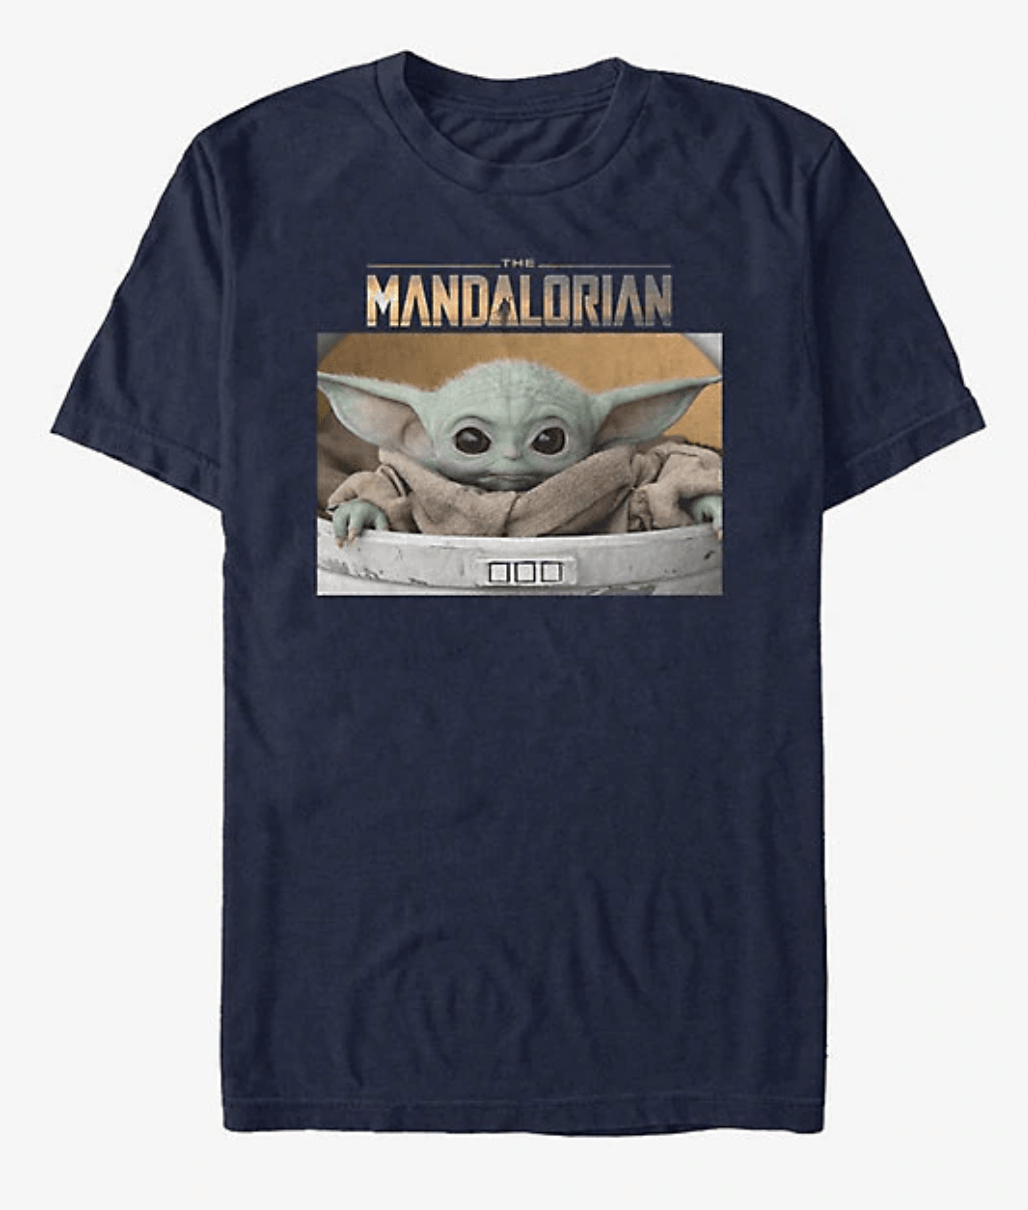 This is the Way, to Mandalorian Merchandise 26